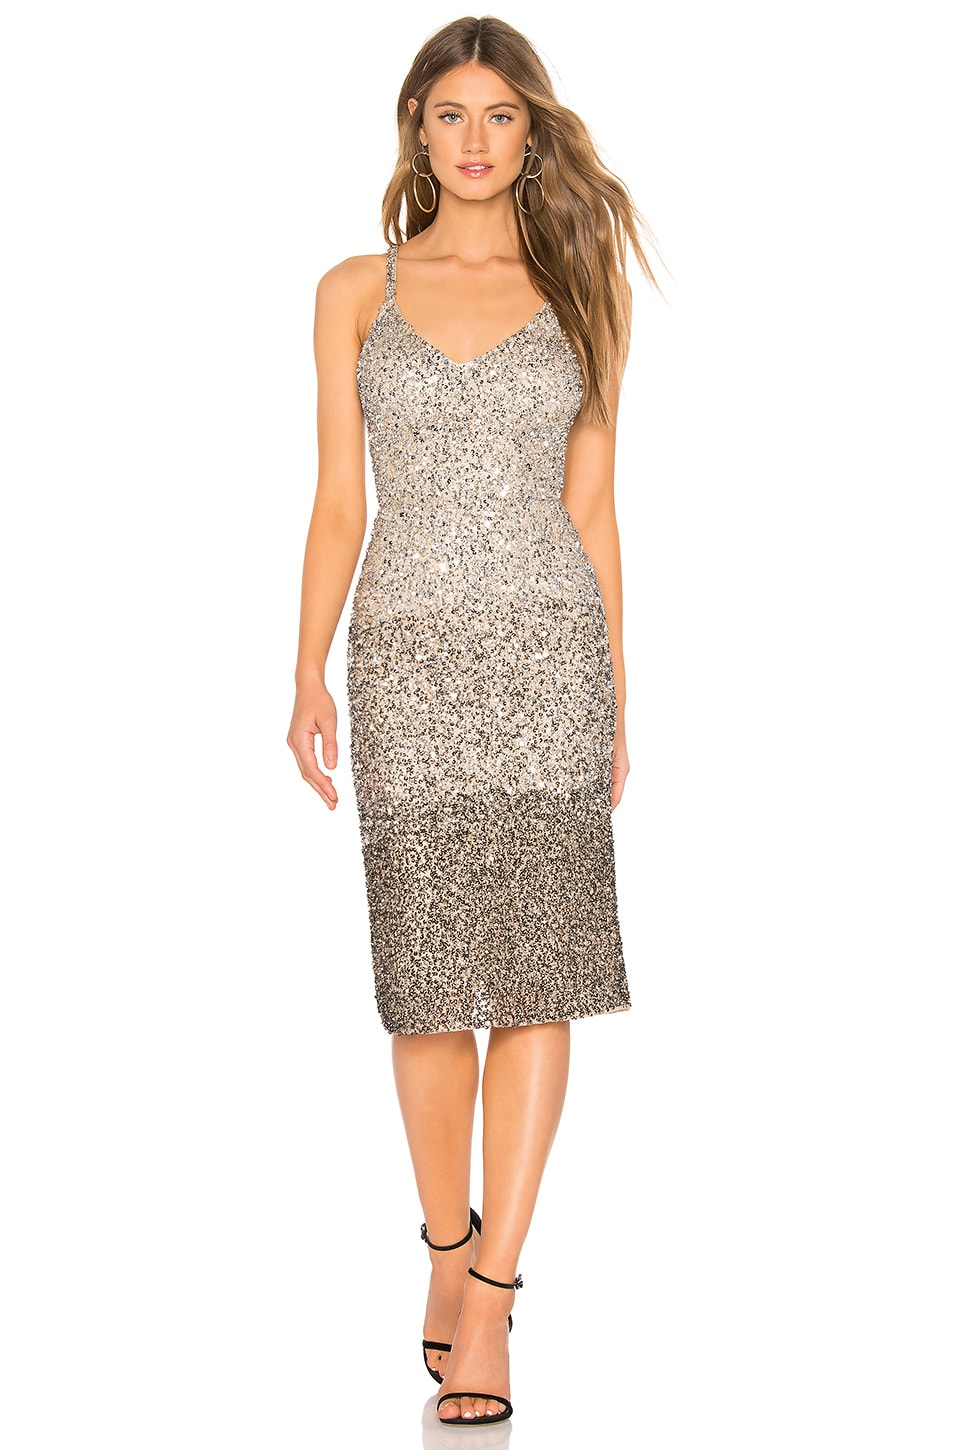 Parker Black Faith Dress in Sand